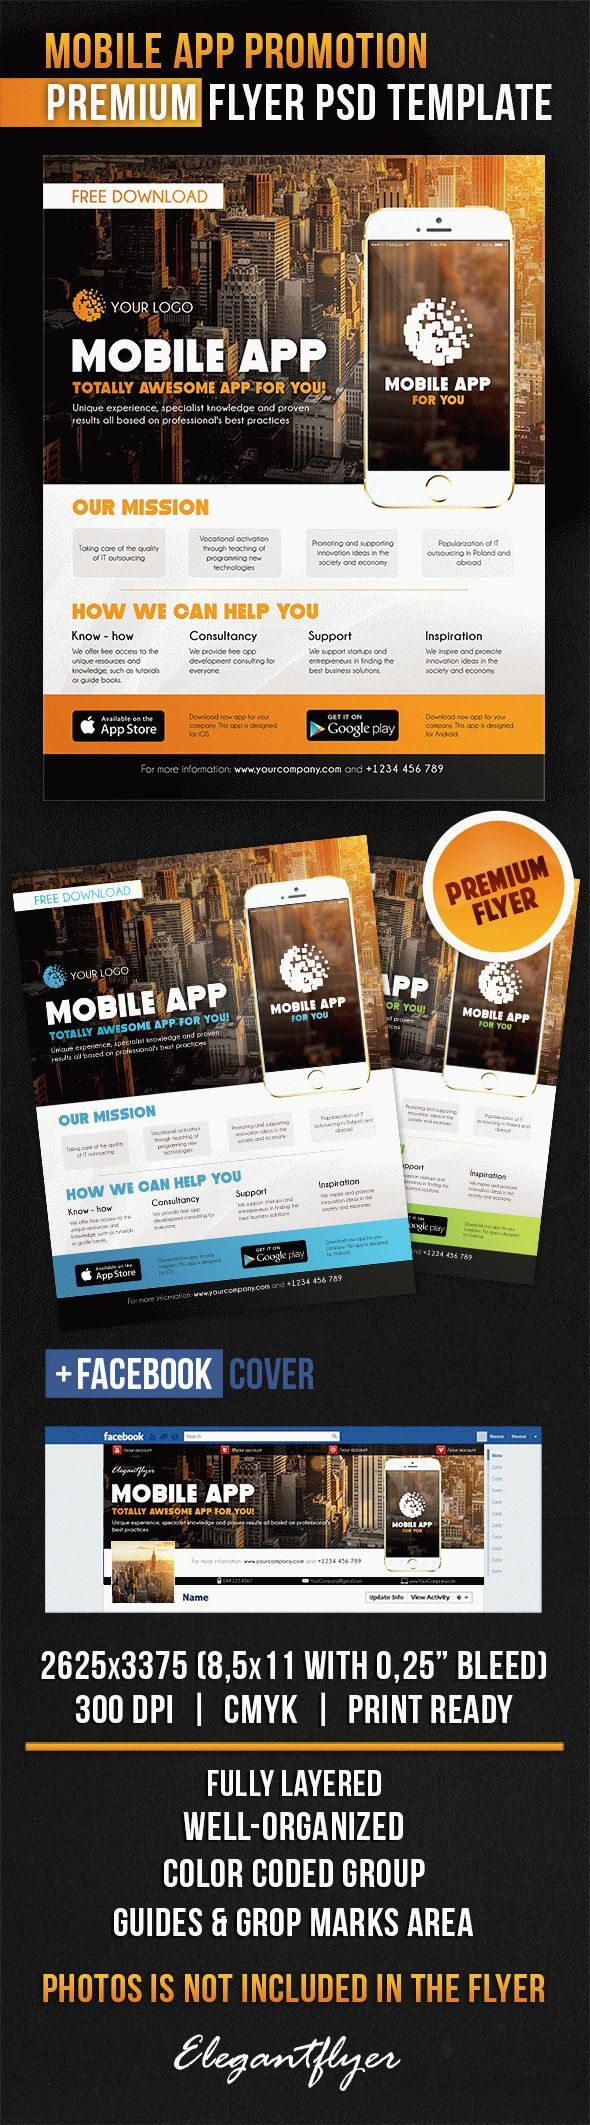 Mobile app promotion flyer psd template by elegantflyer for Facebook app template psd